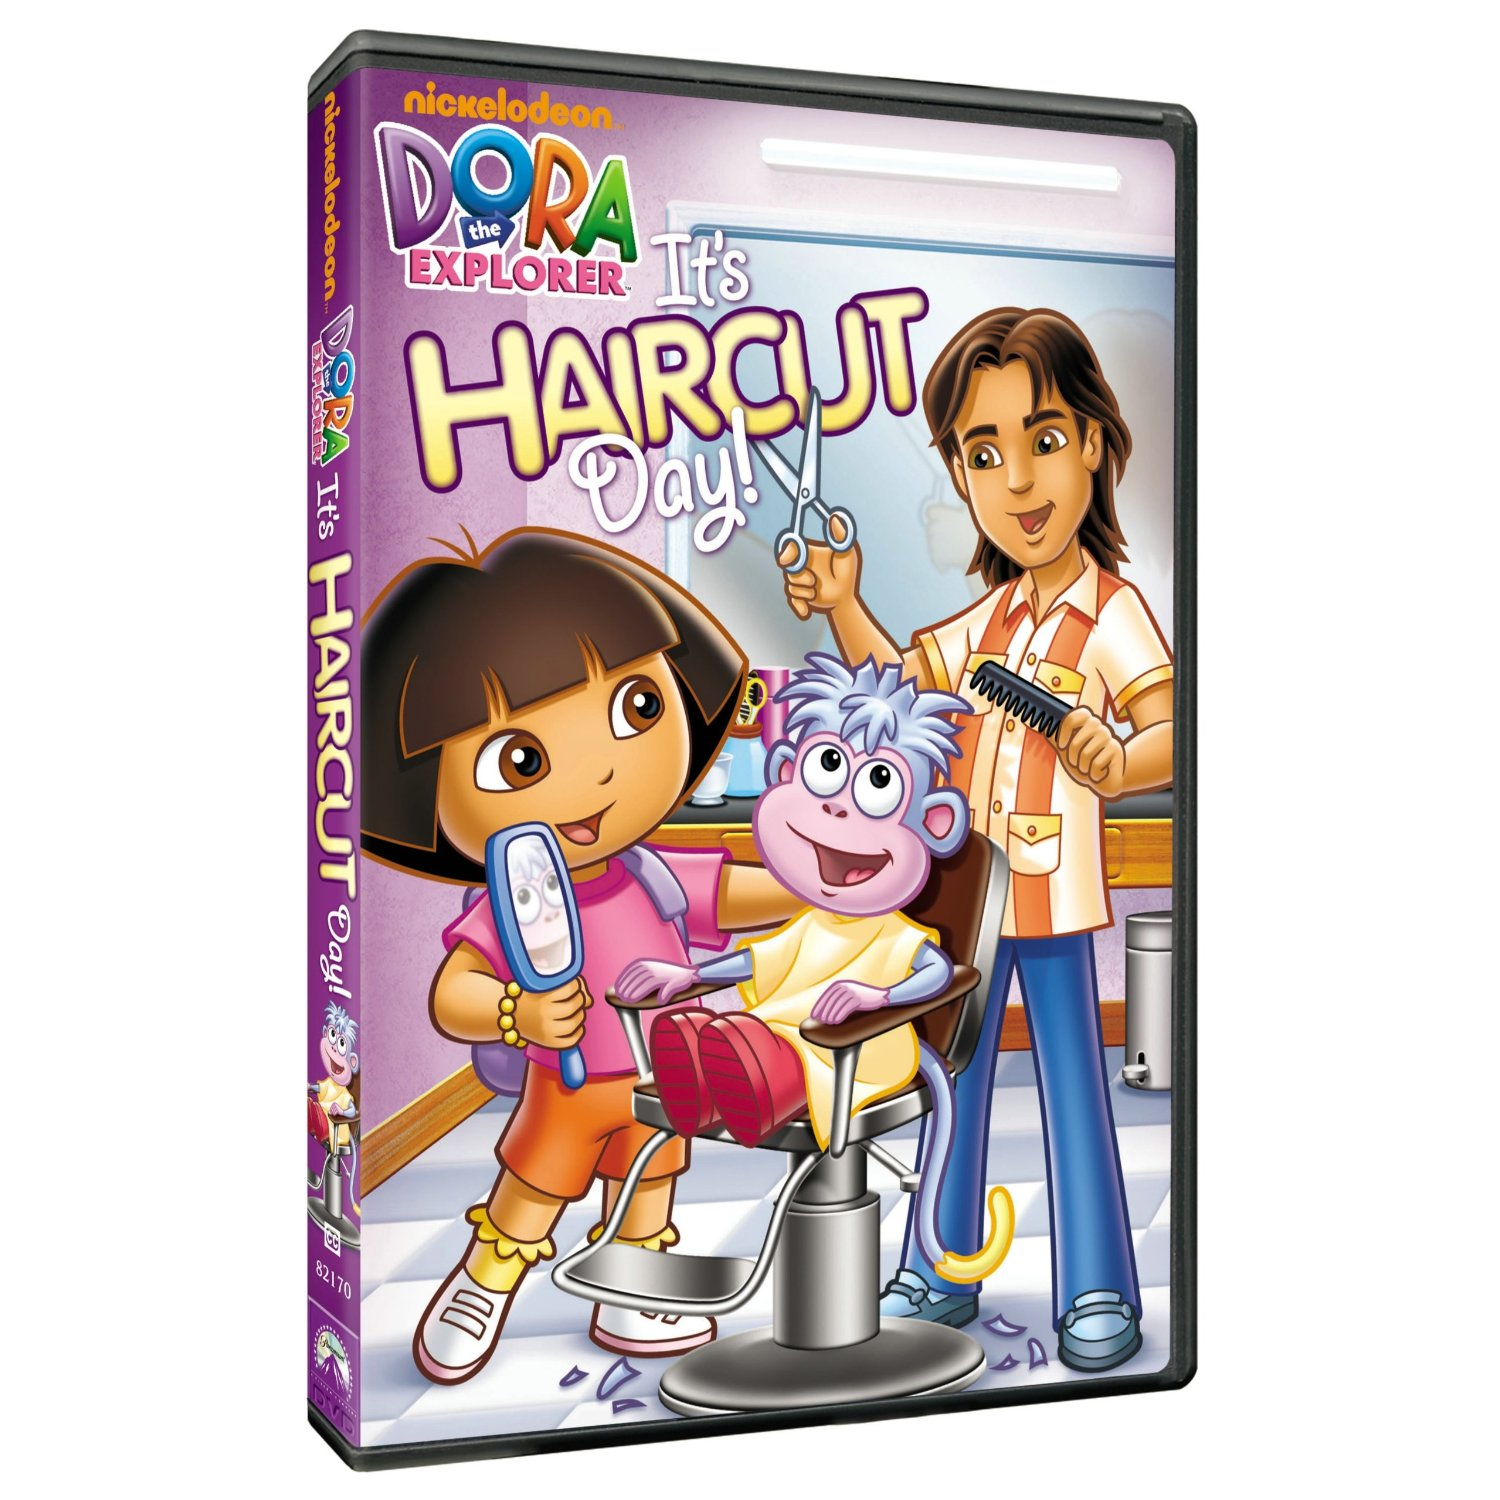 Dora the Explorer Its Haircut Day DVD Available Today MomSpotted